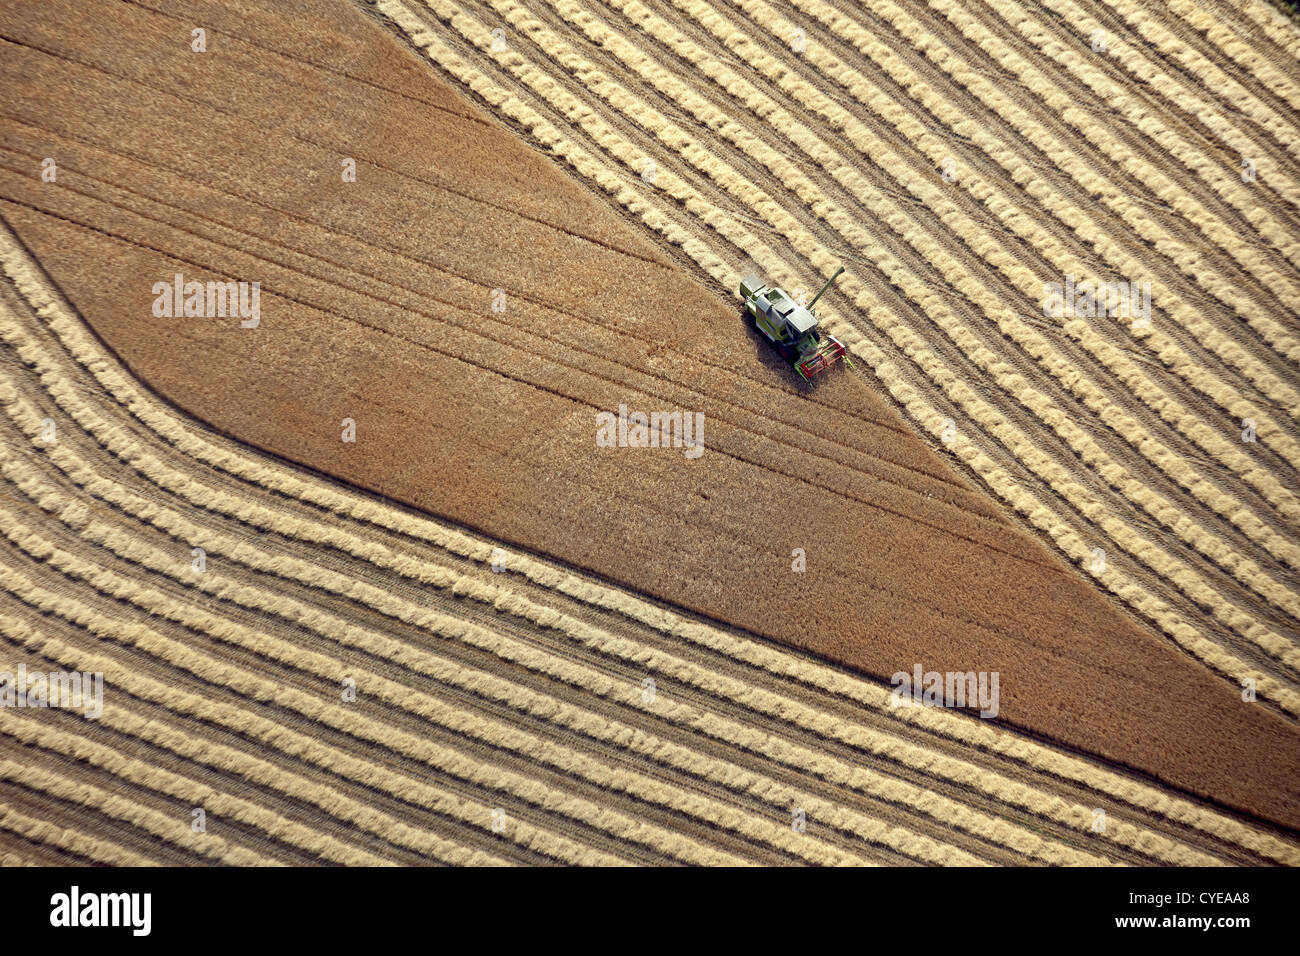 The Netherlands, Donderen, Combine harvester harvesting wheat field. Aerial. Stock Photo